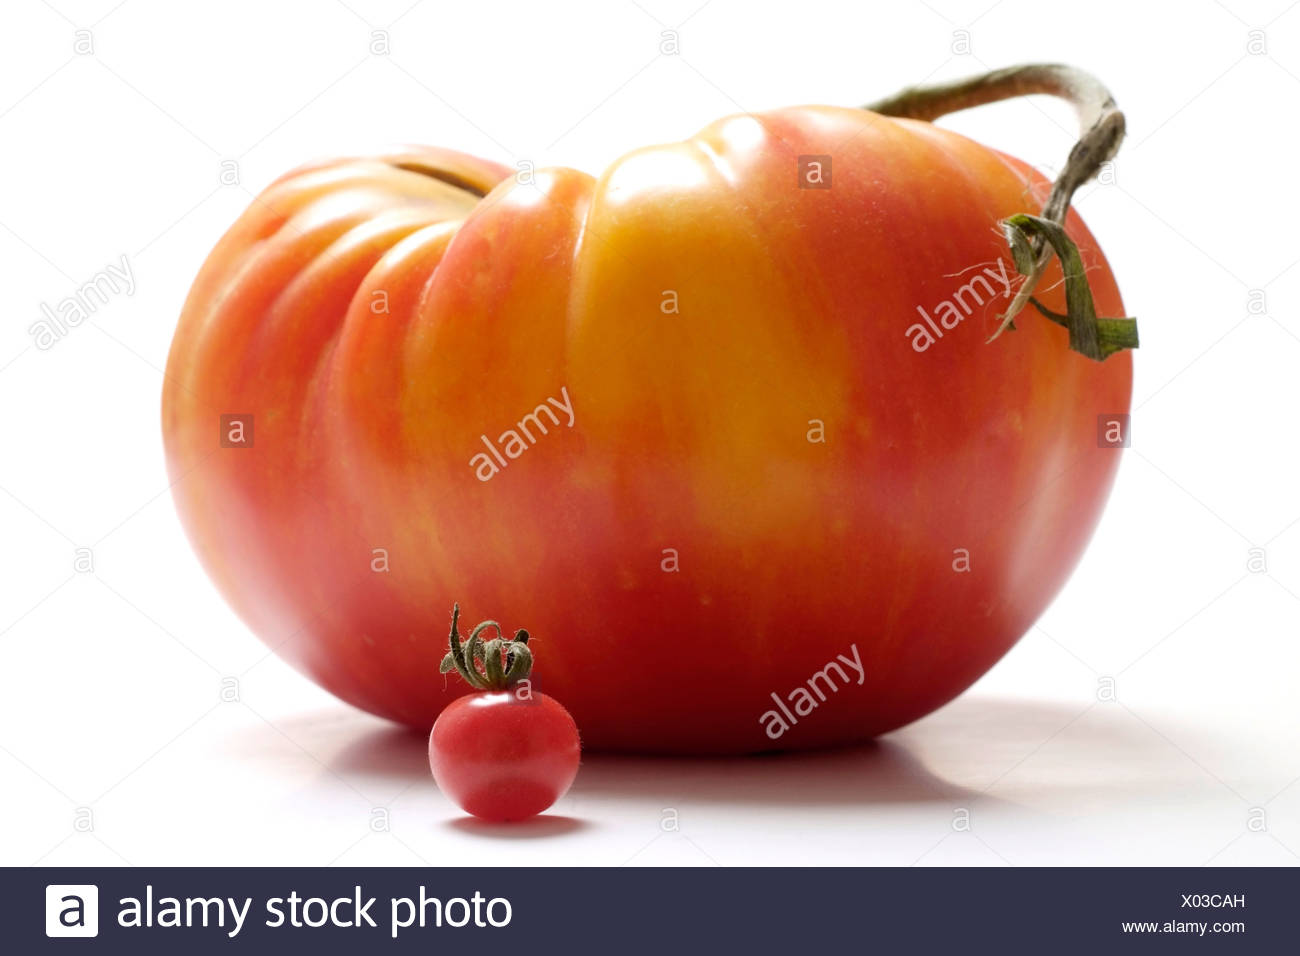 Tomatoes in different sizes - Stock Image